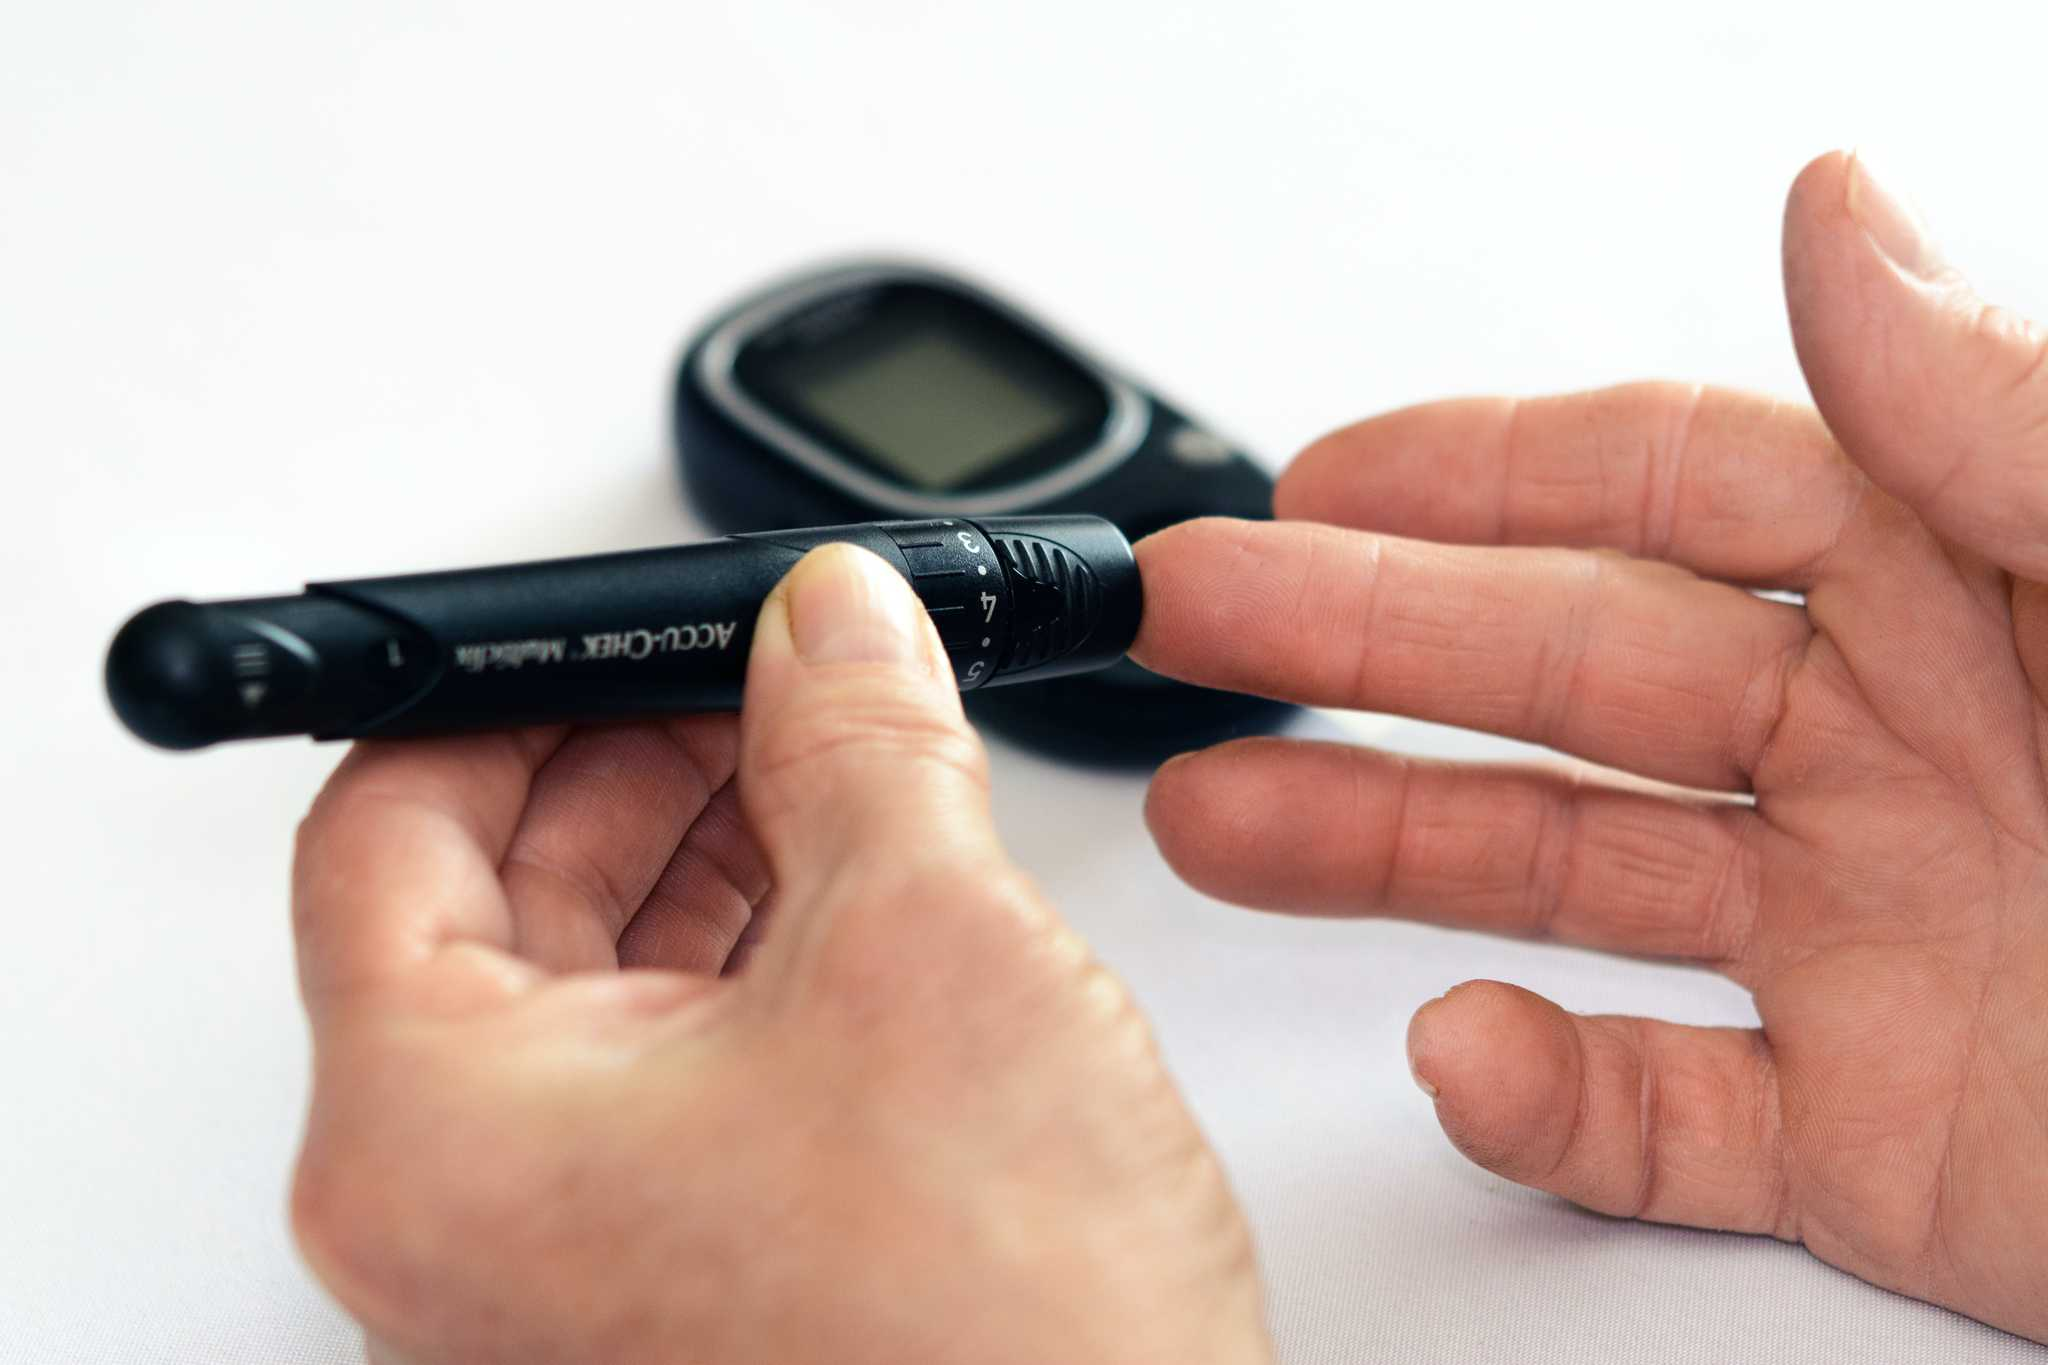 Person checking blood sugar level